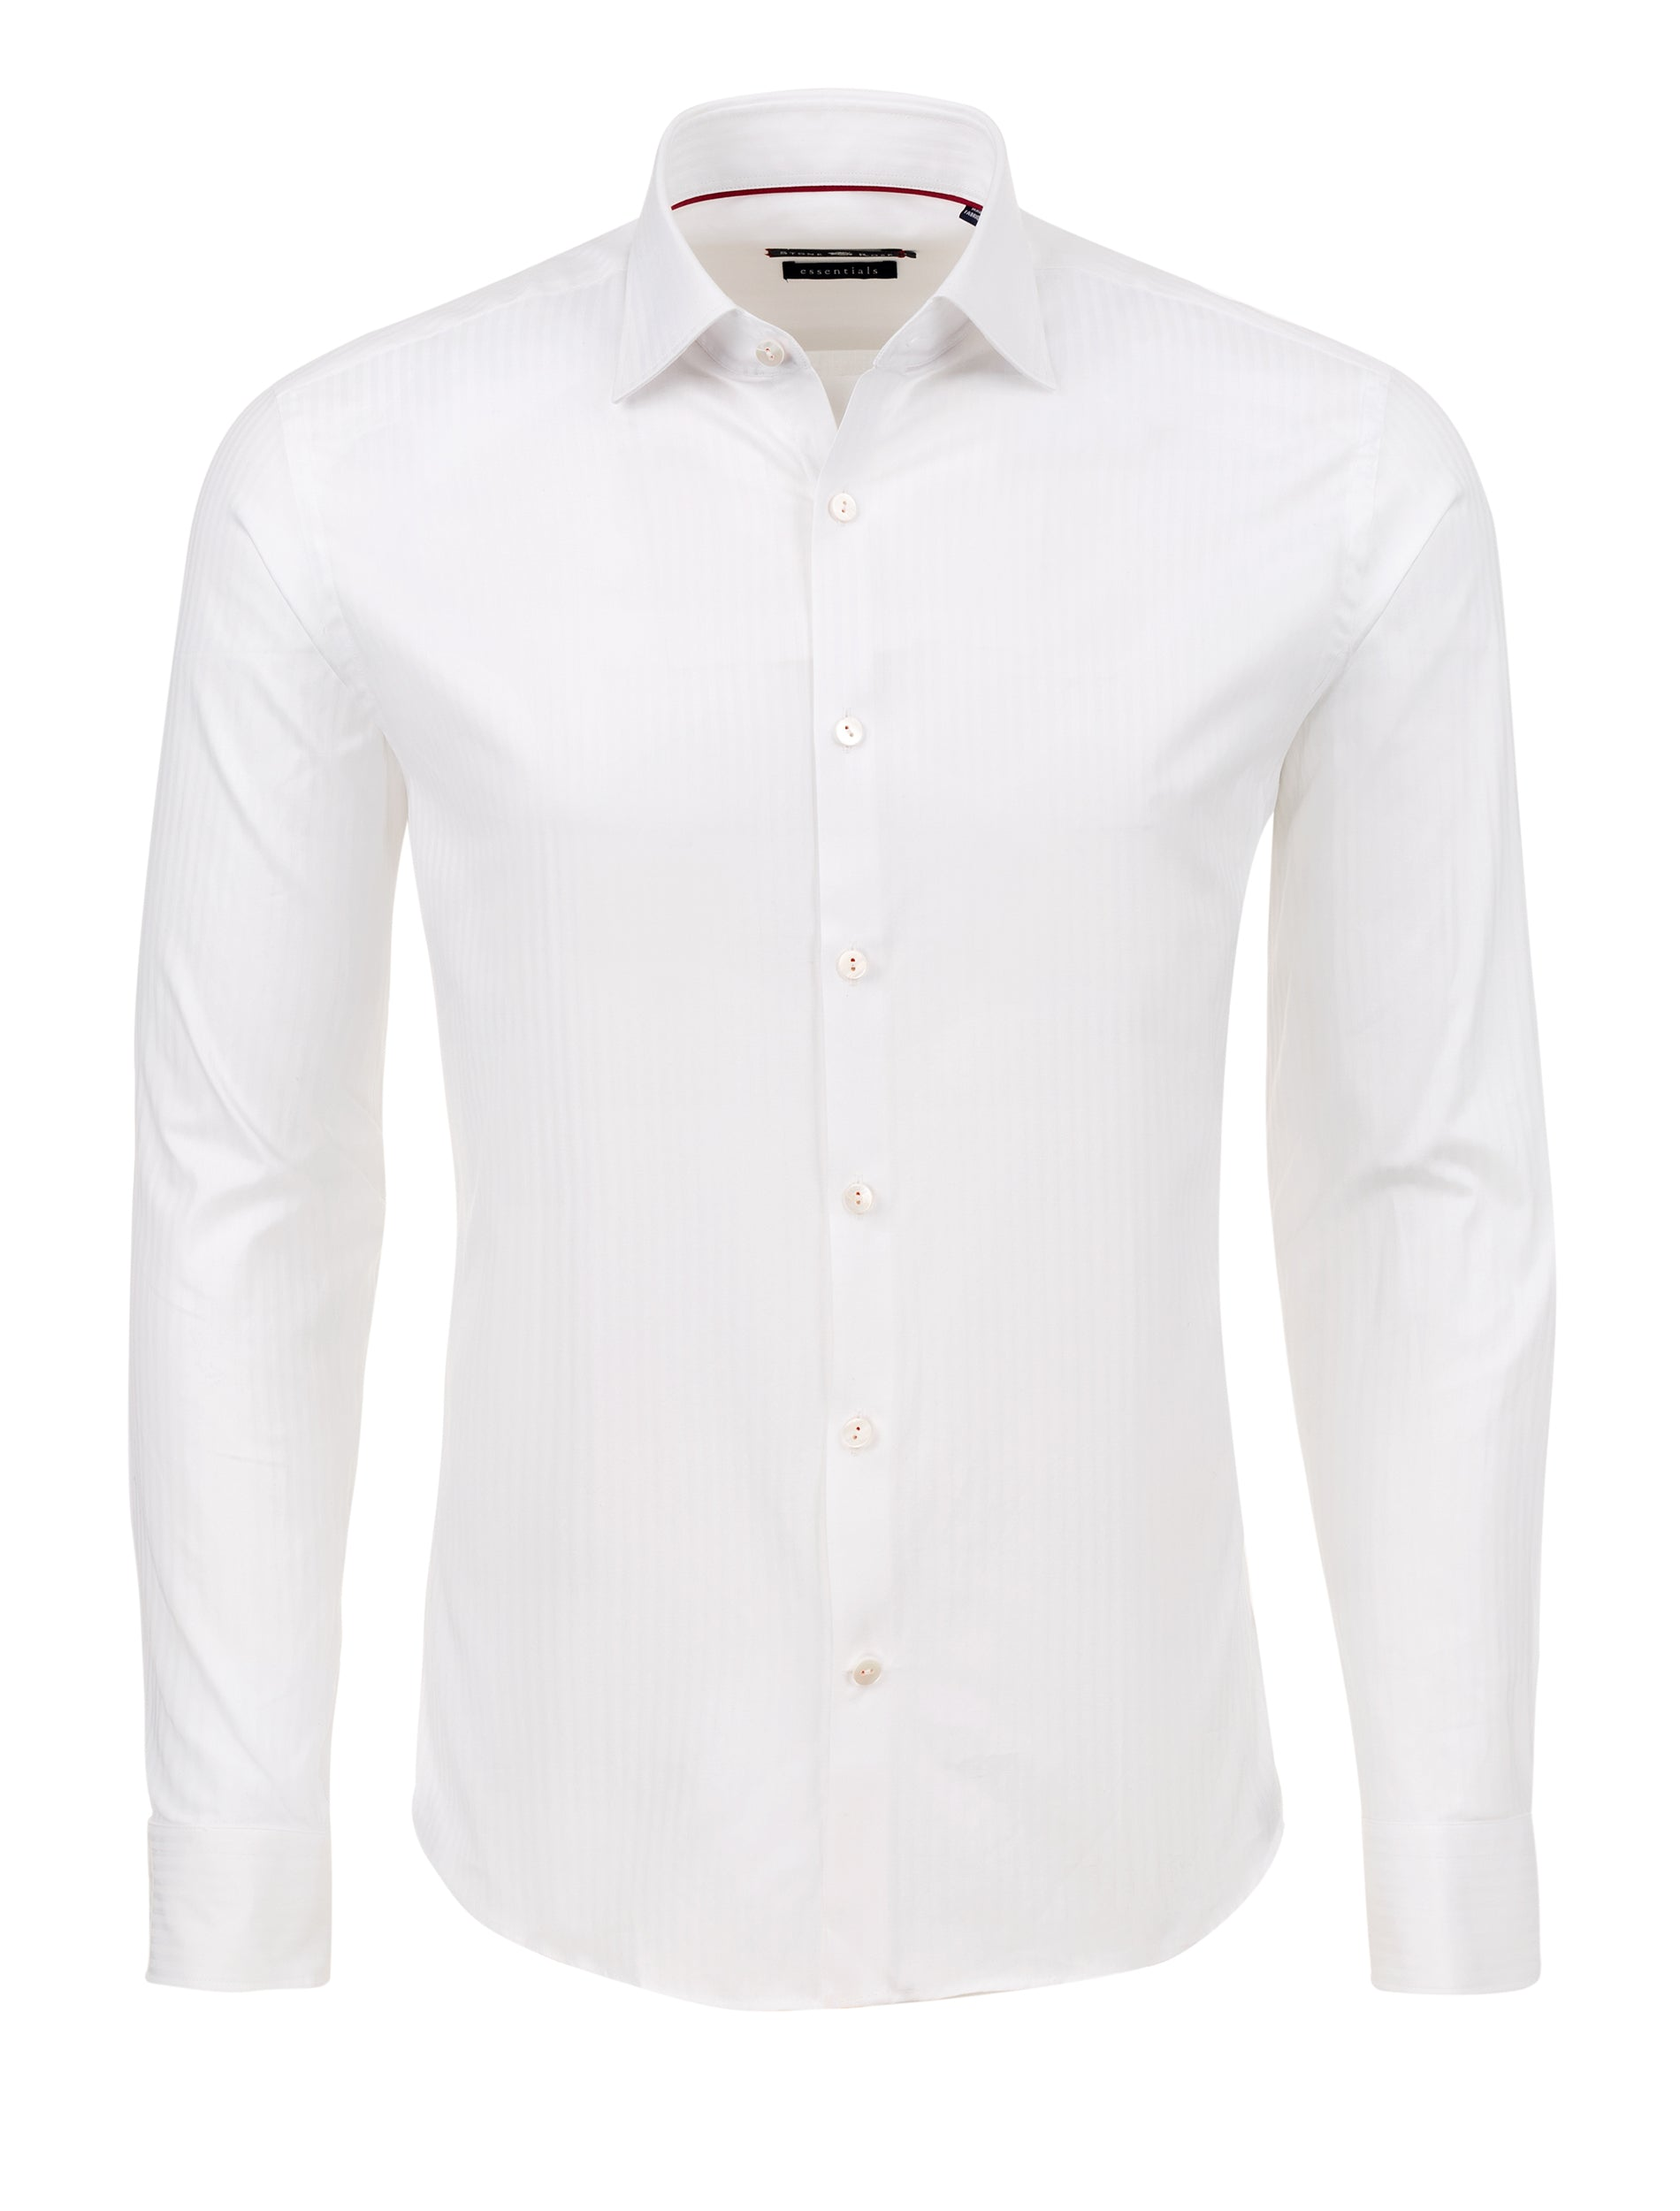 Tonal Stripe Button up Shirt in White-Stone Rose